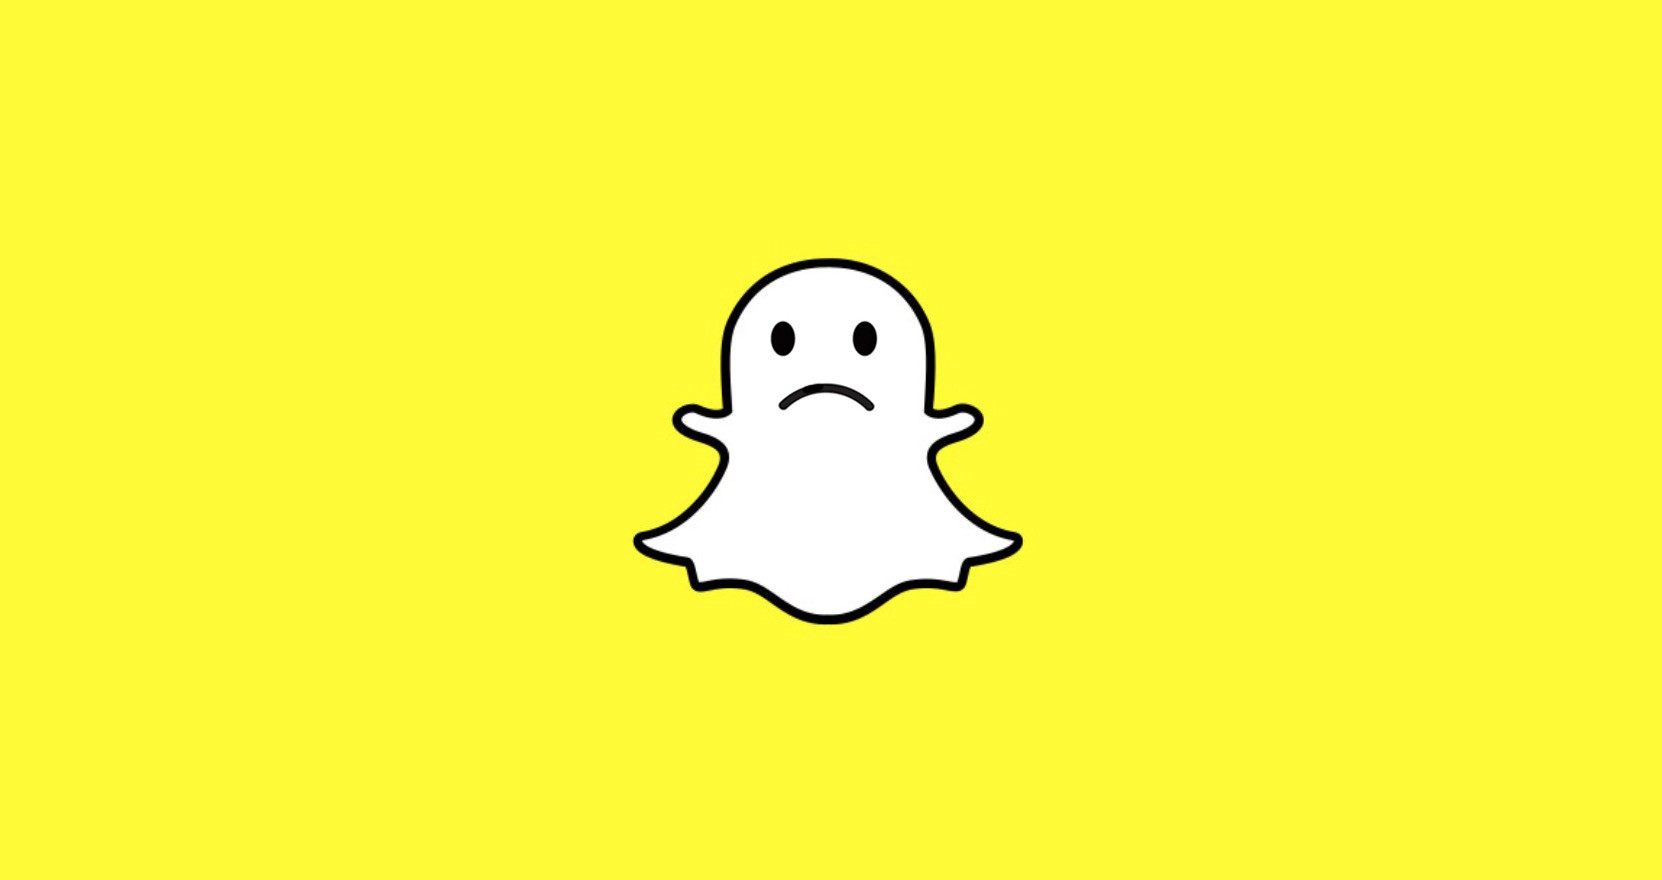 How to find someone elses friends on snapchat